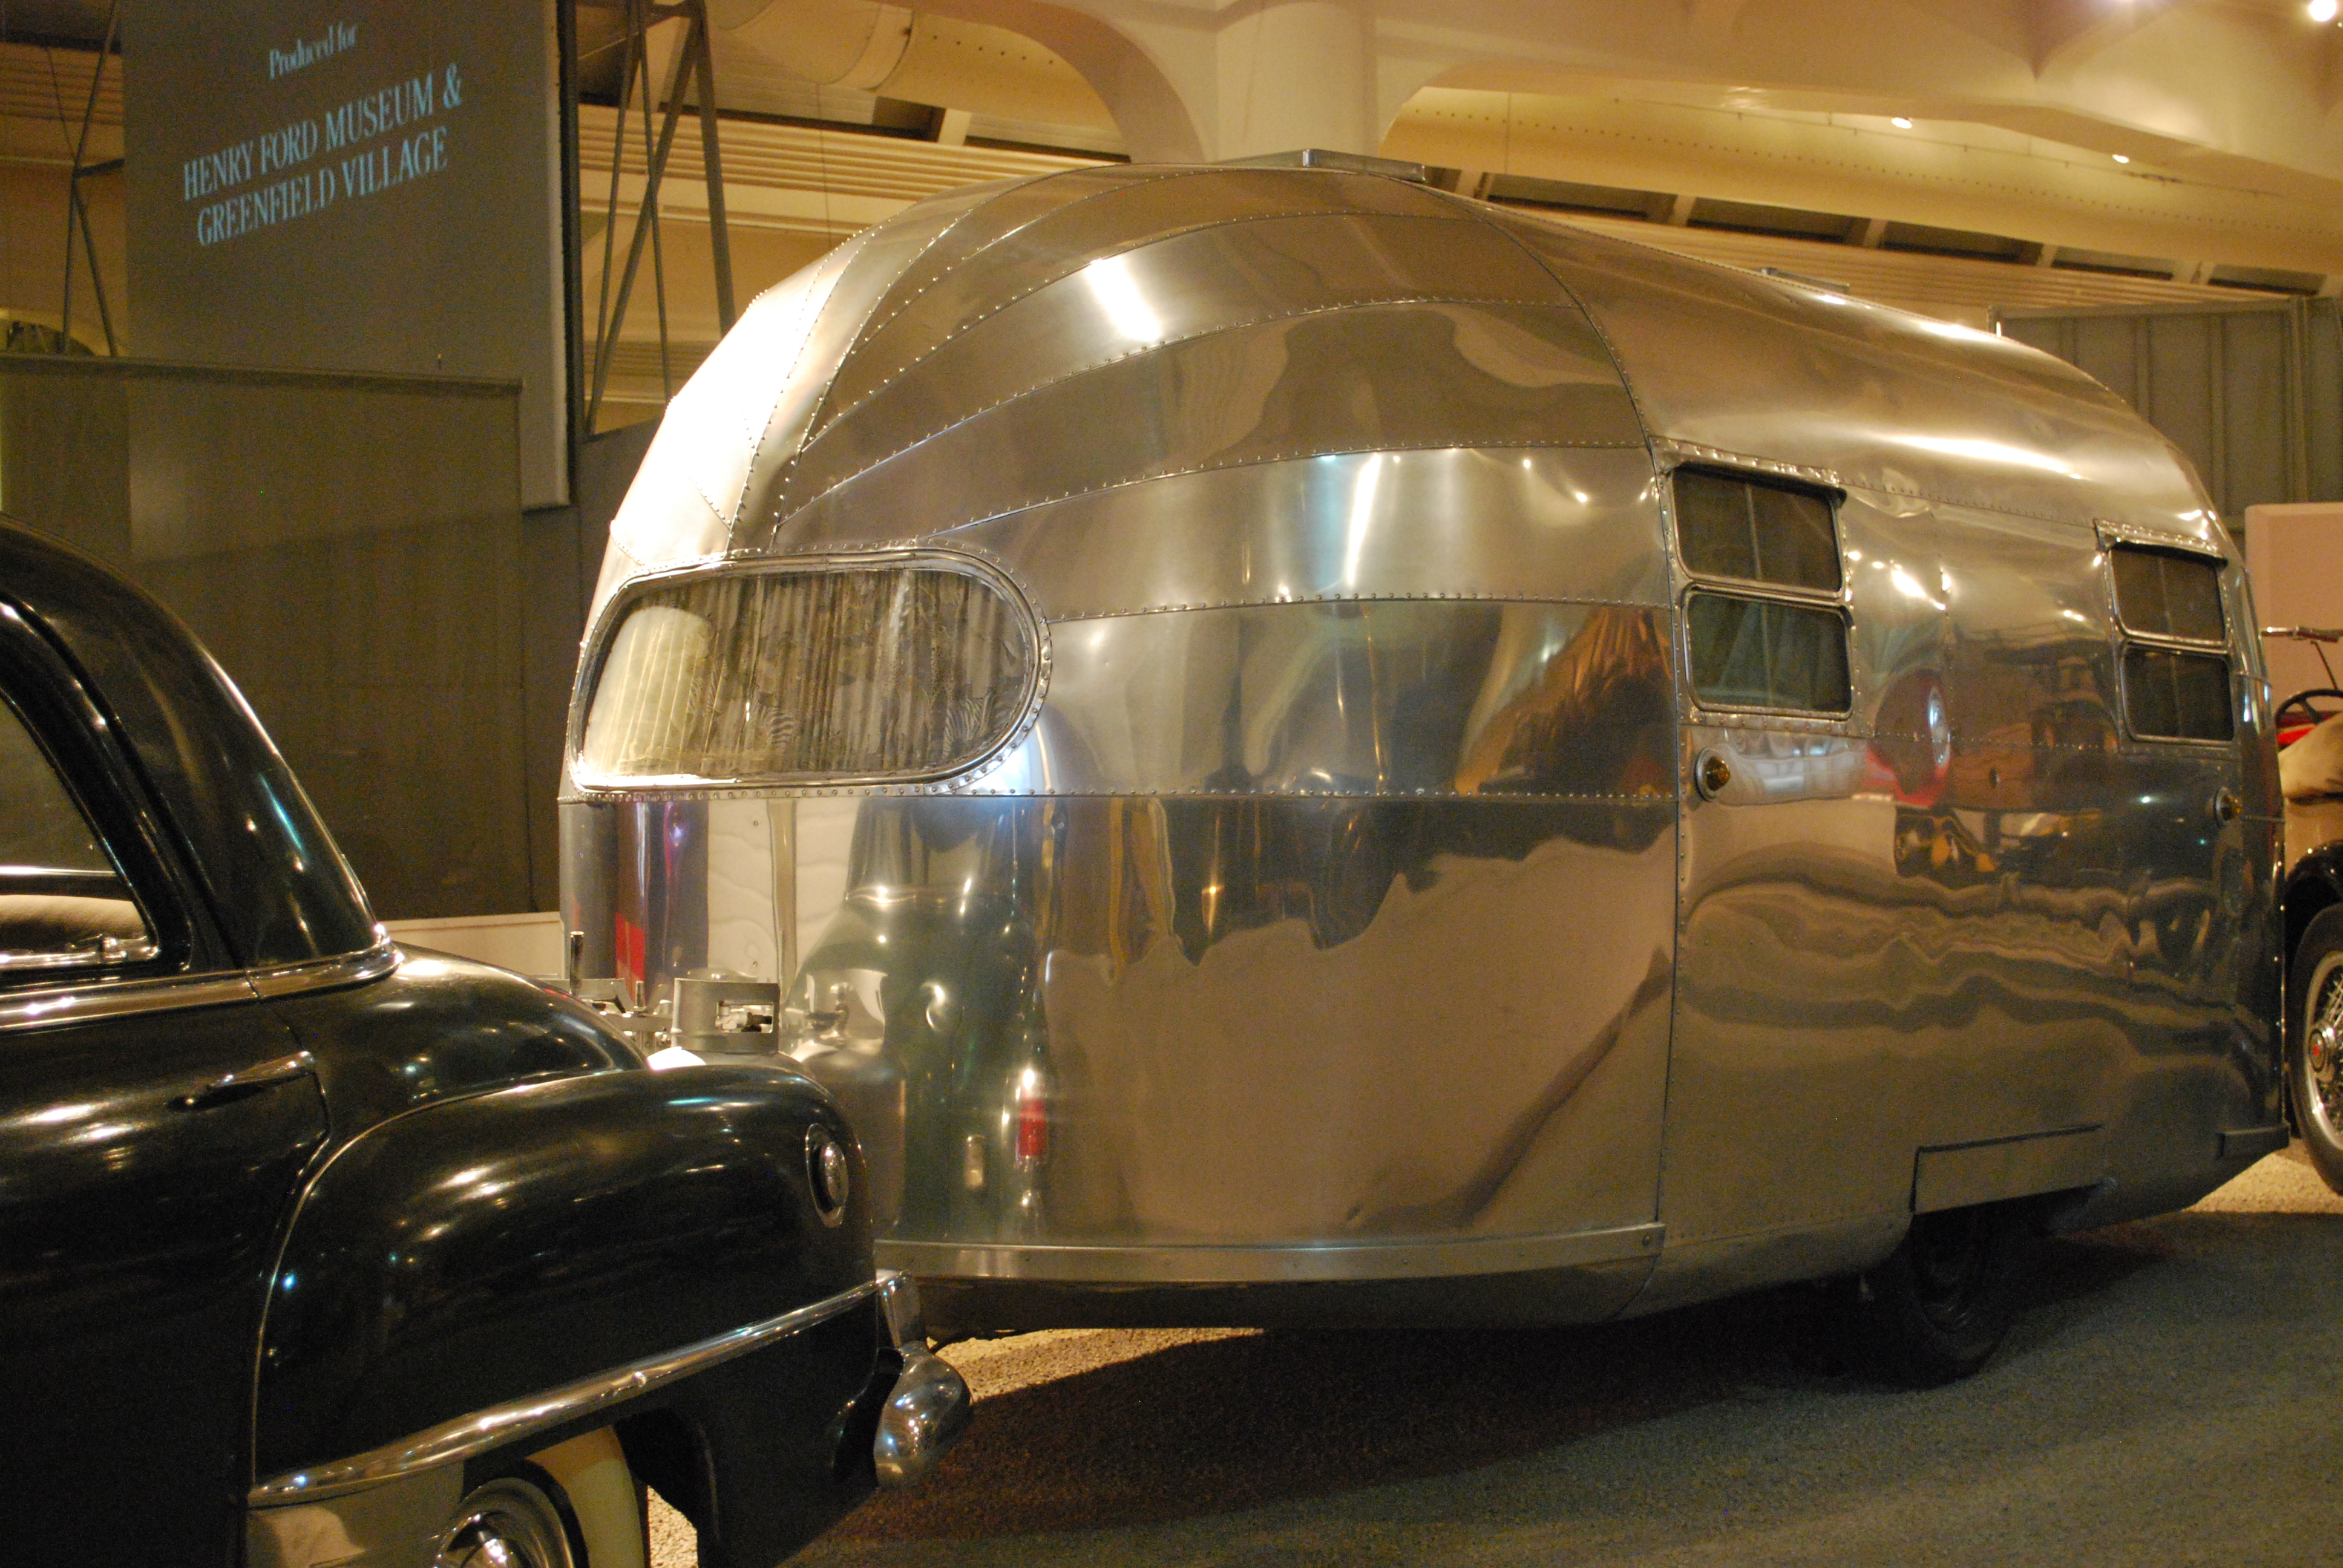 RV Trailer - Camper at Henry Ford Museum